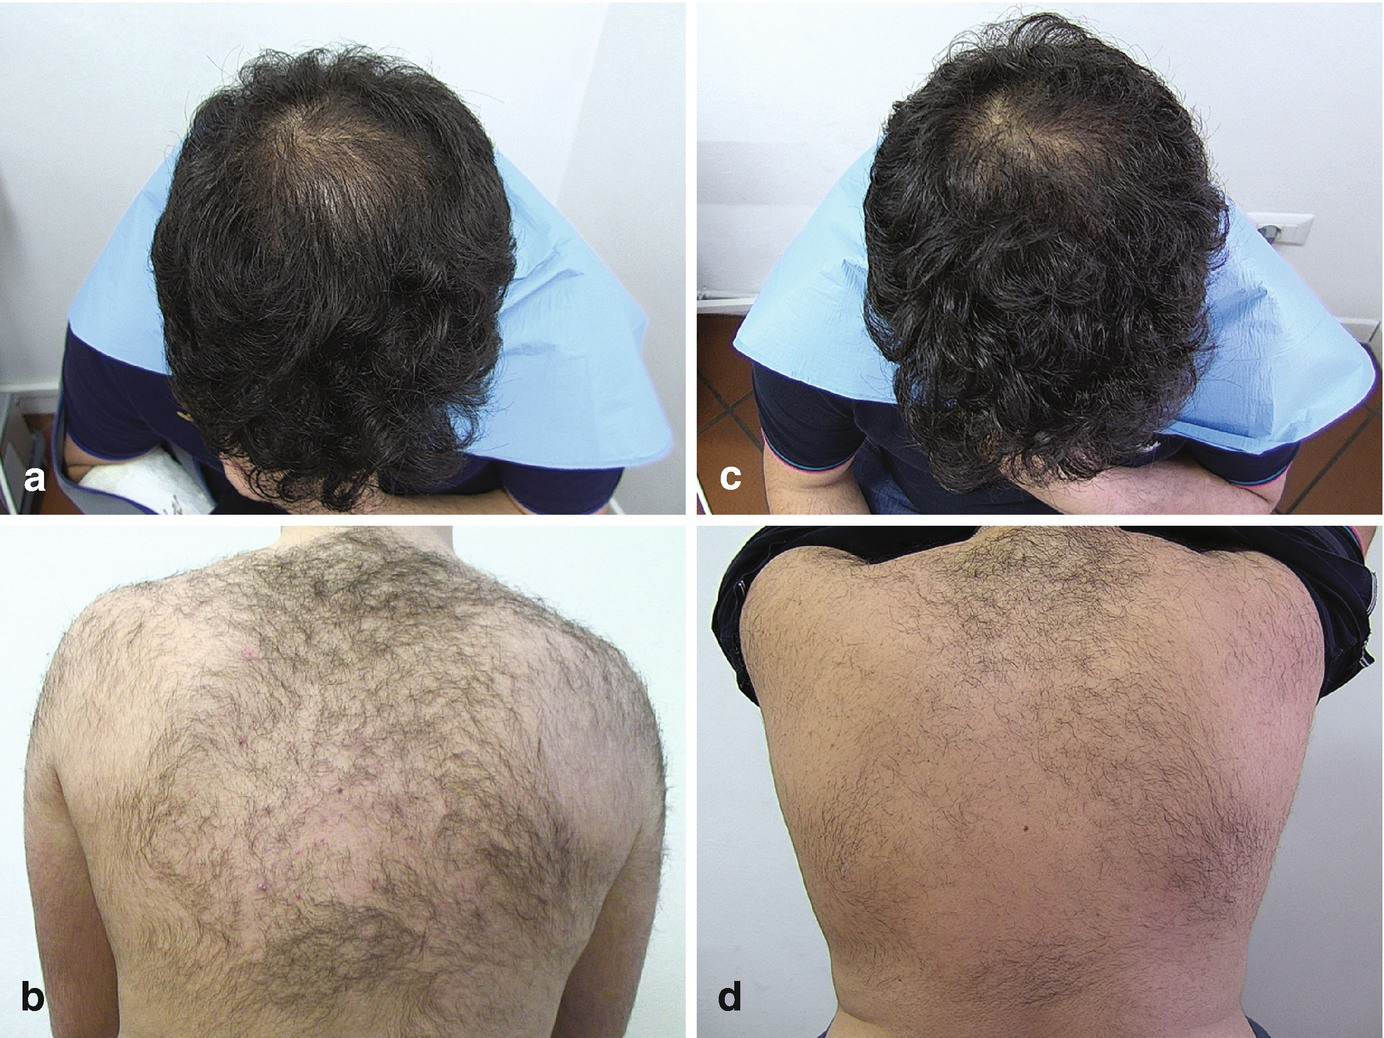 Androgenetic Alopecia Clinical Treatment Springerlink